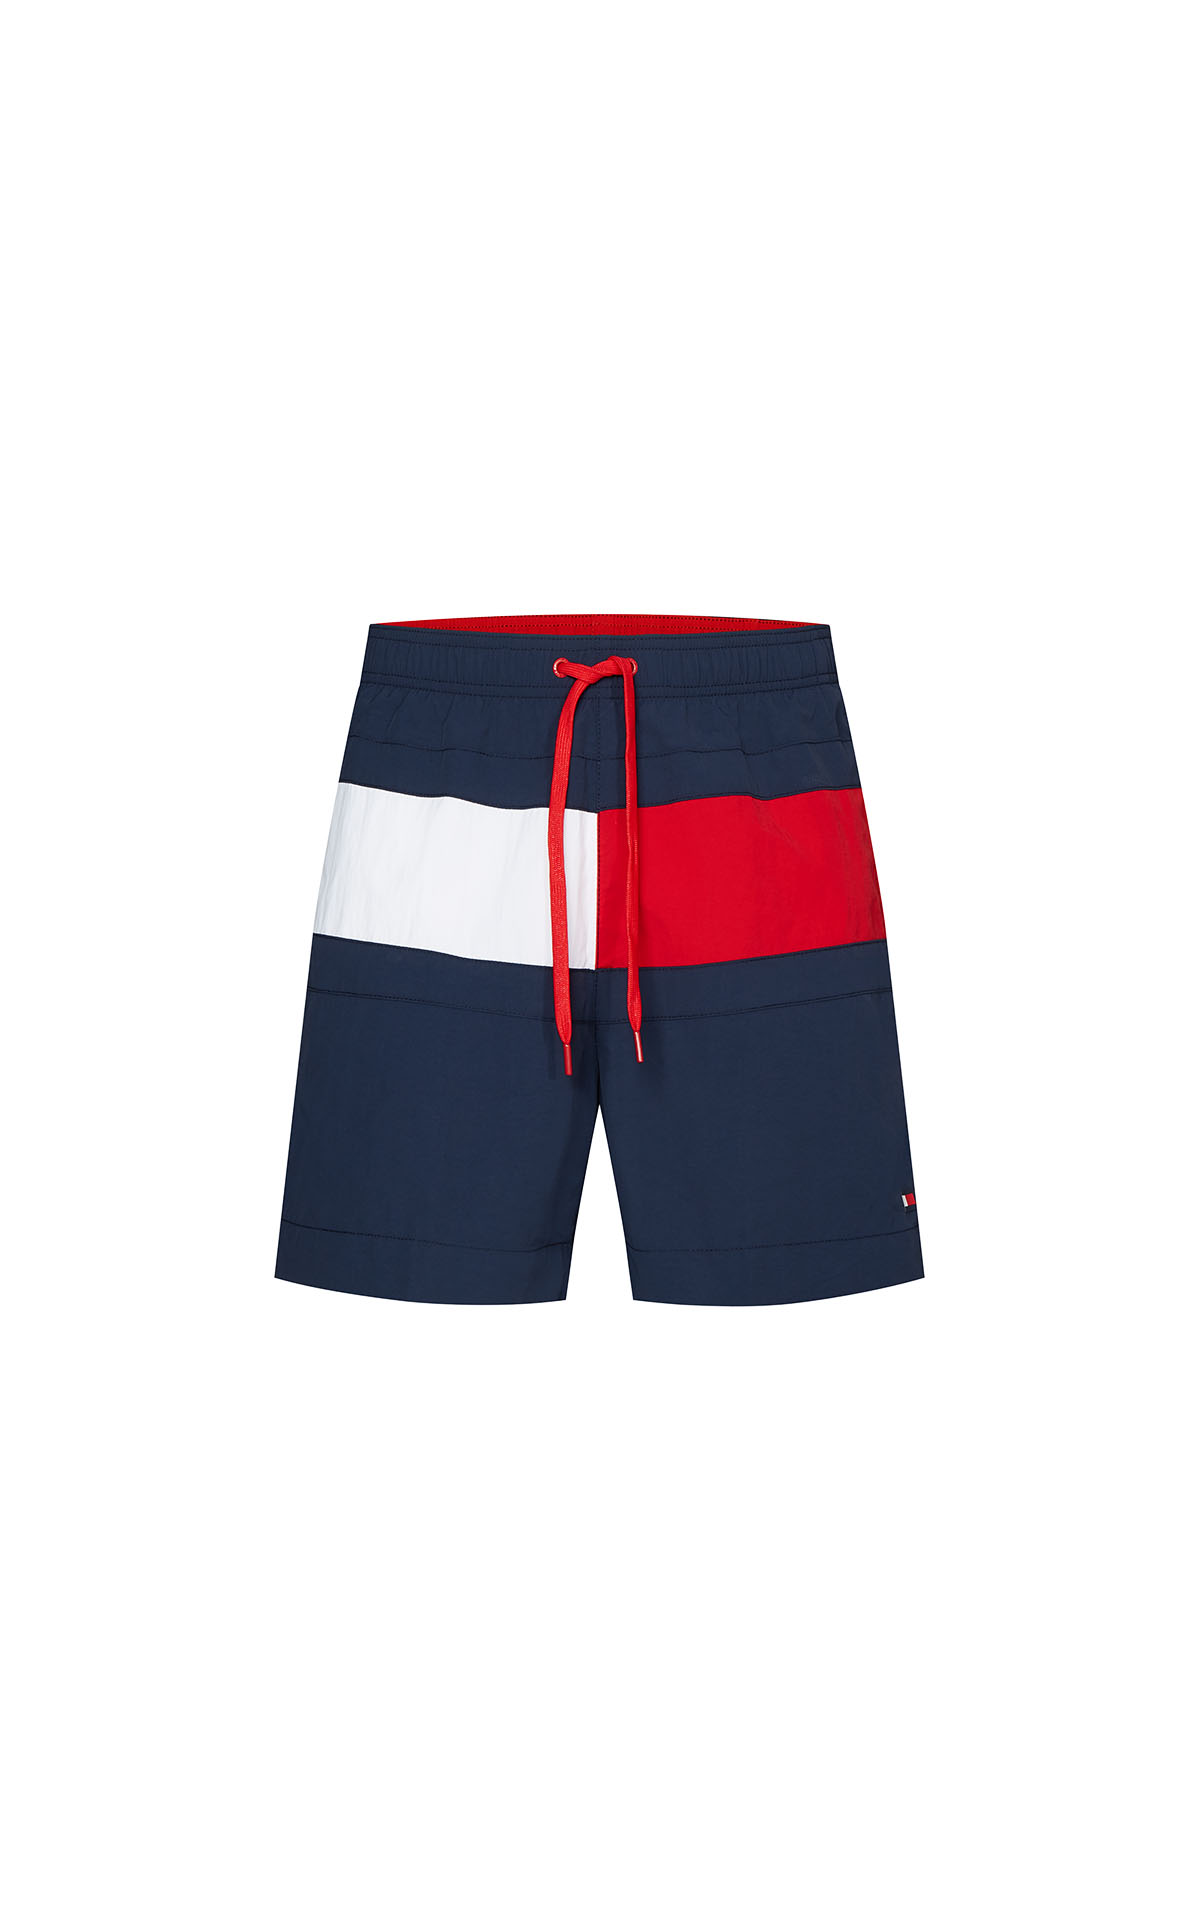 Tommy Hilfiger flag trunk at the Bicester Village Shopping Collection